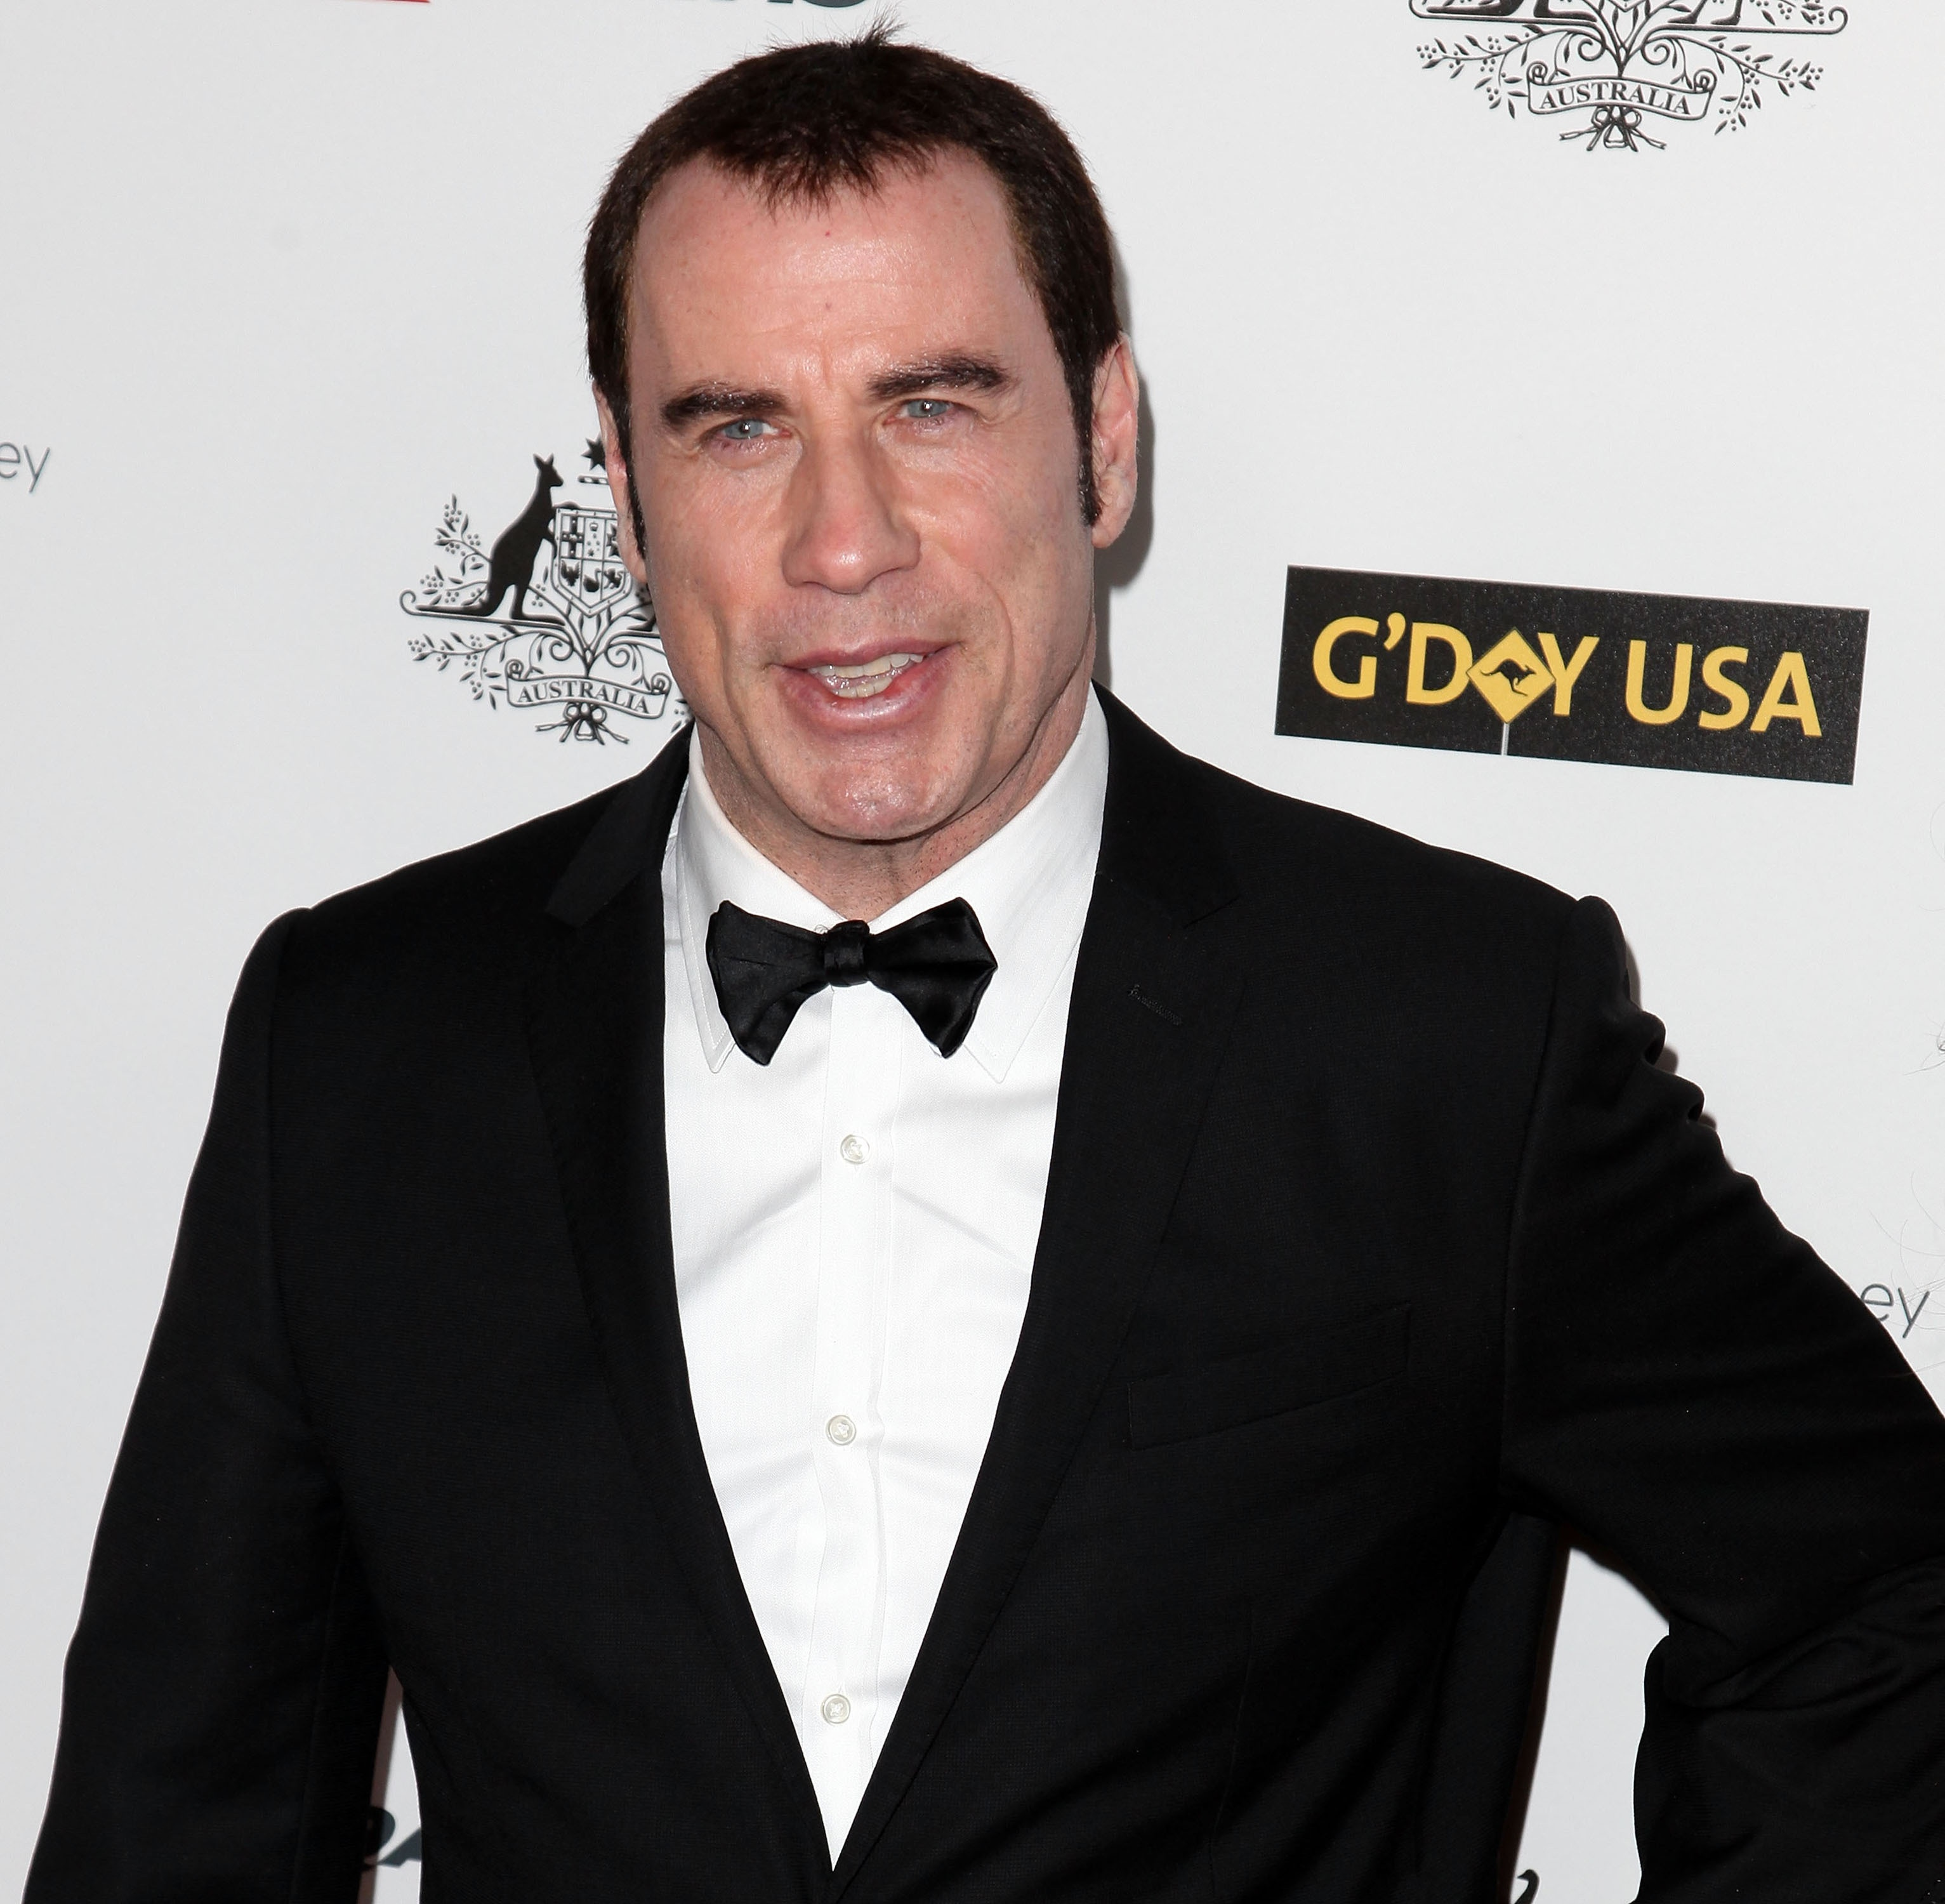 John Travolta back in trouble for a book about bath houses